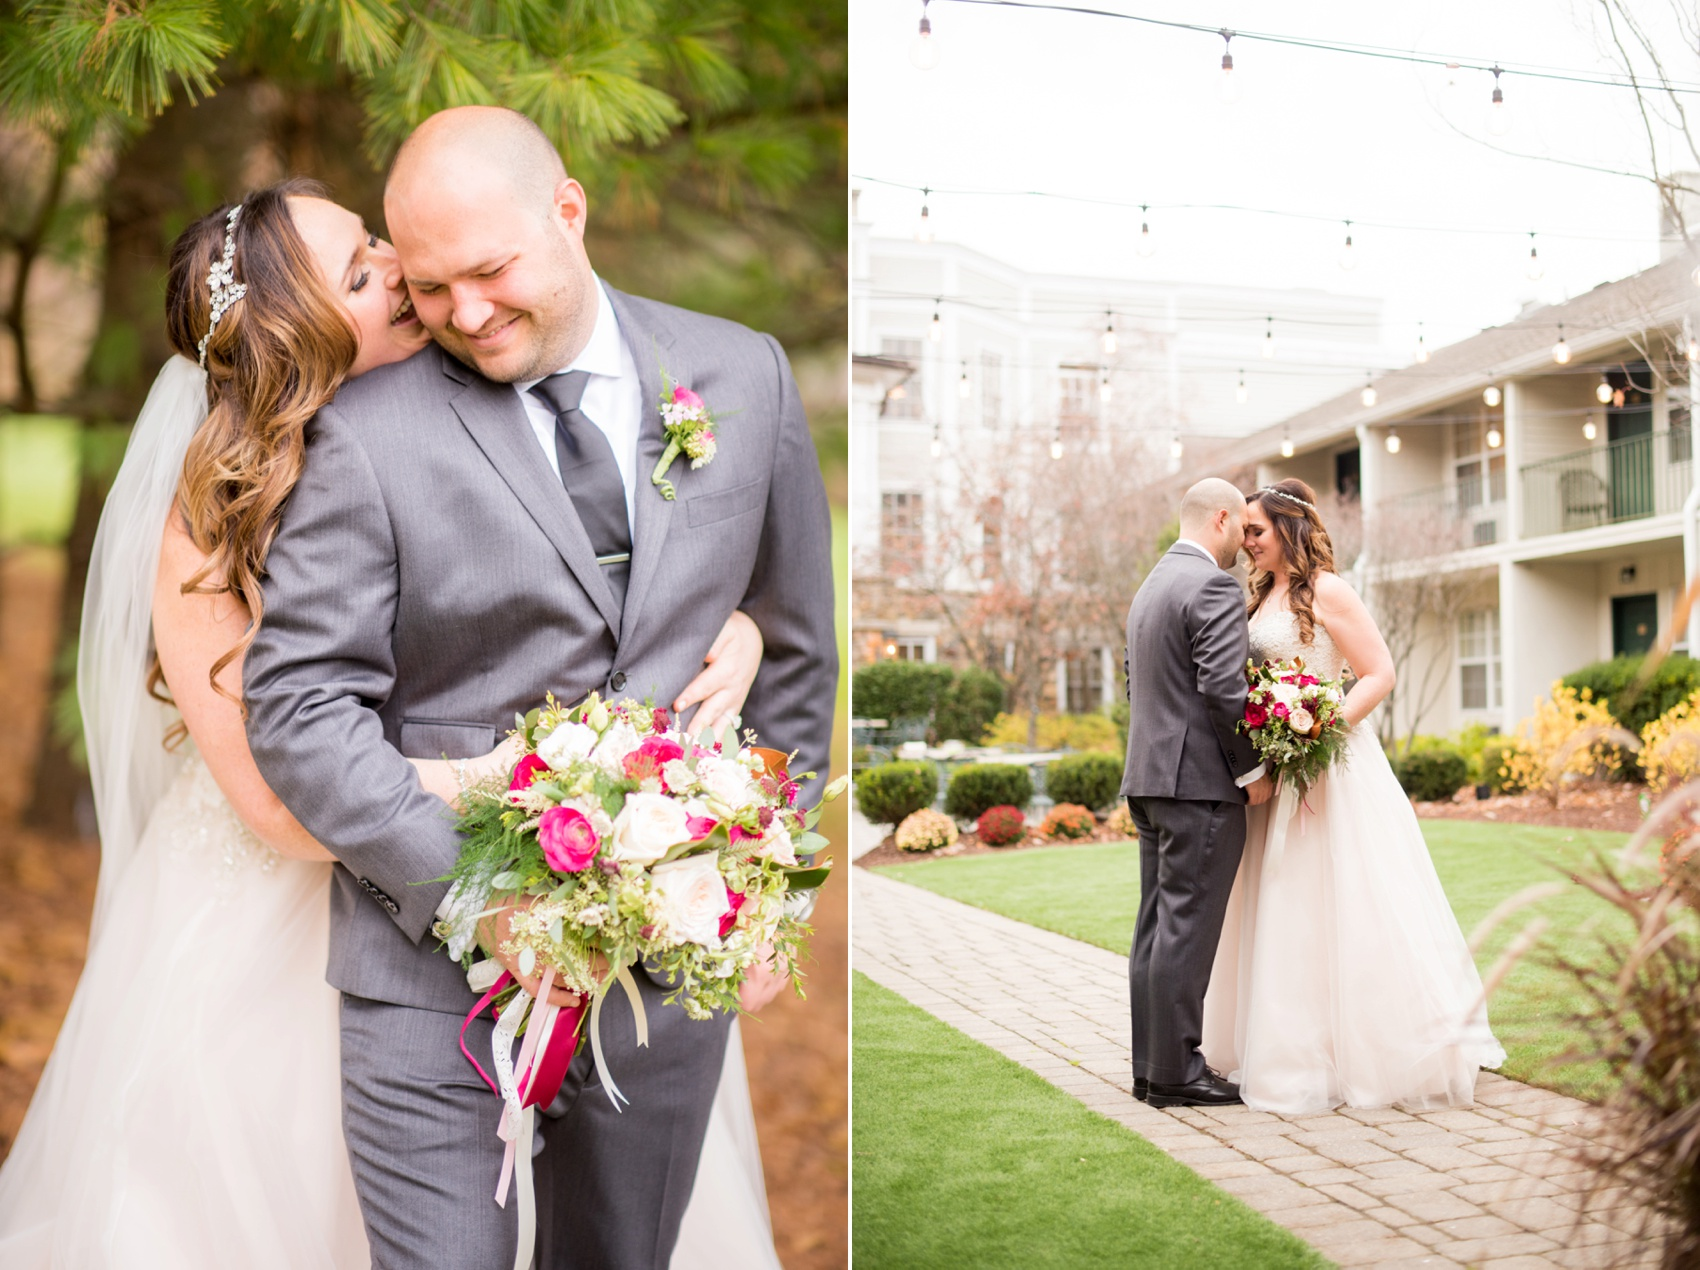 Olde Mill Inn New Jersey wedding by Mikkel Paige Photography, NYC and Raleigh wedding photographer. Bride and groom fall photos first look with flowers by The Arrangement and gown from Kleinfelds.